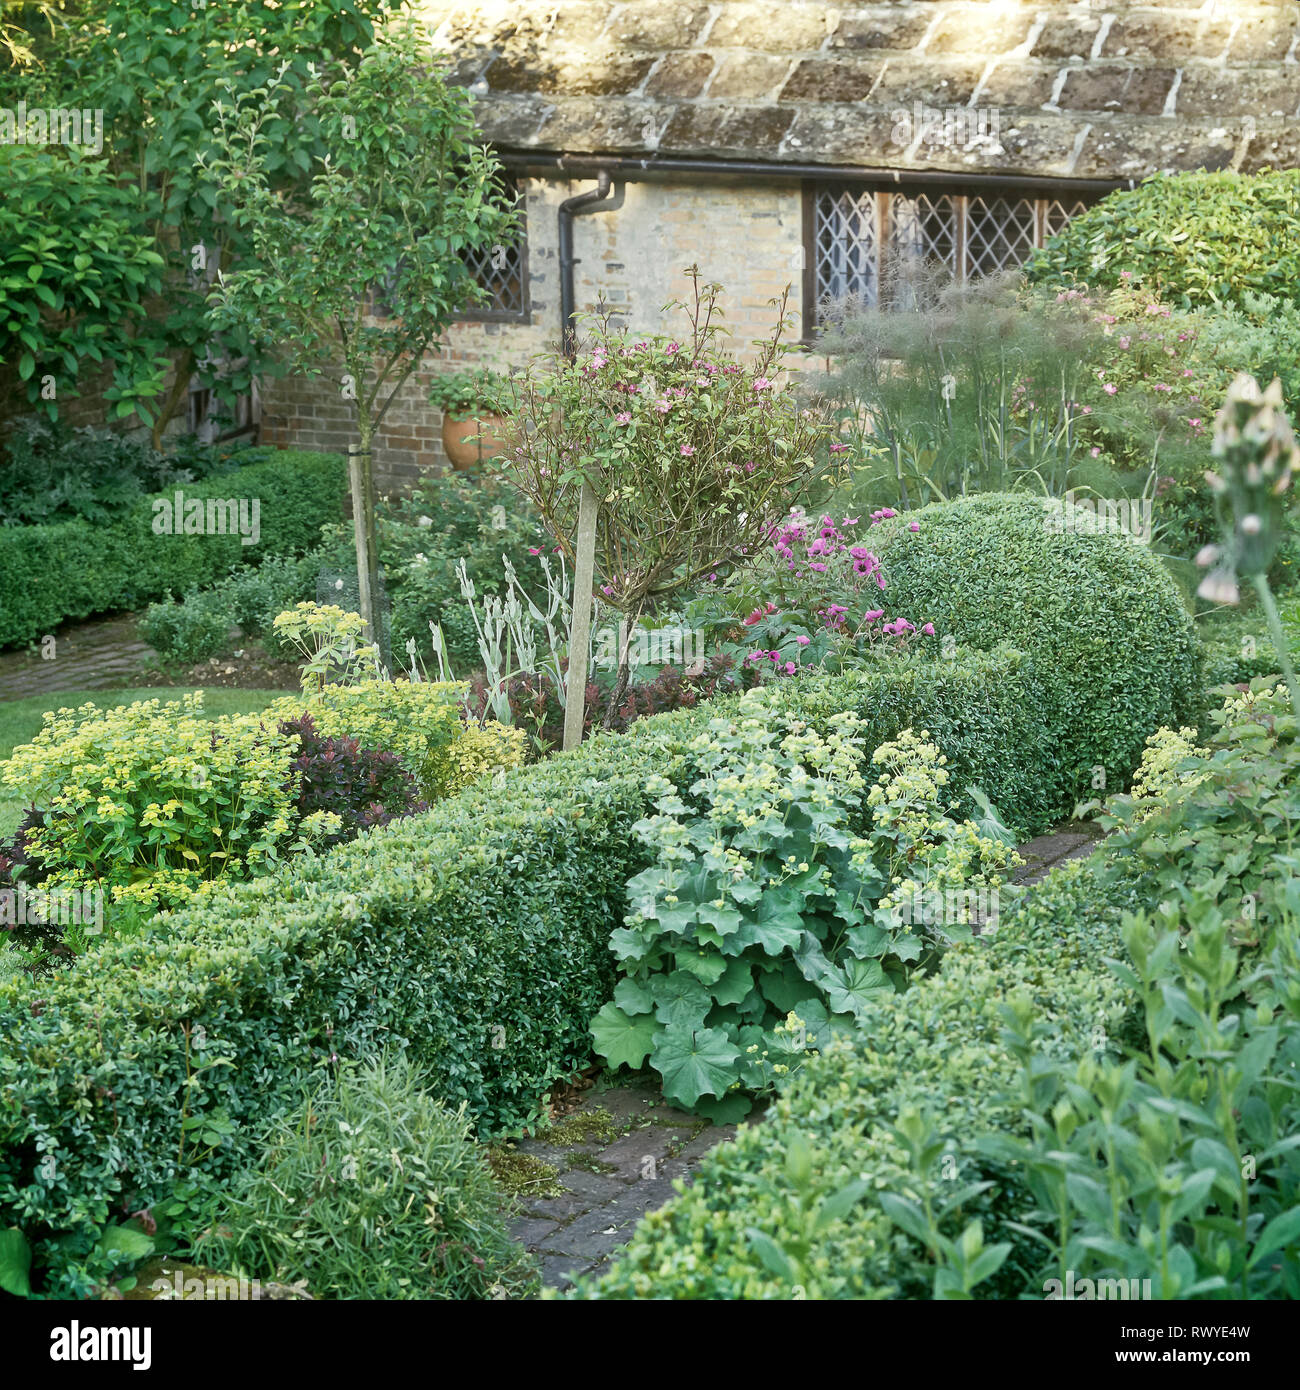 Garden with hedge - Stock Image